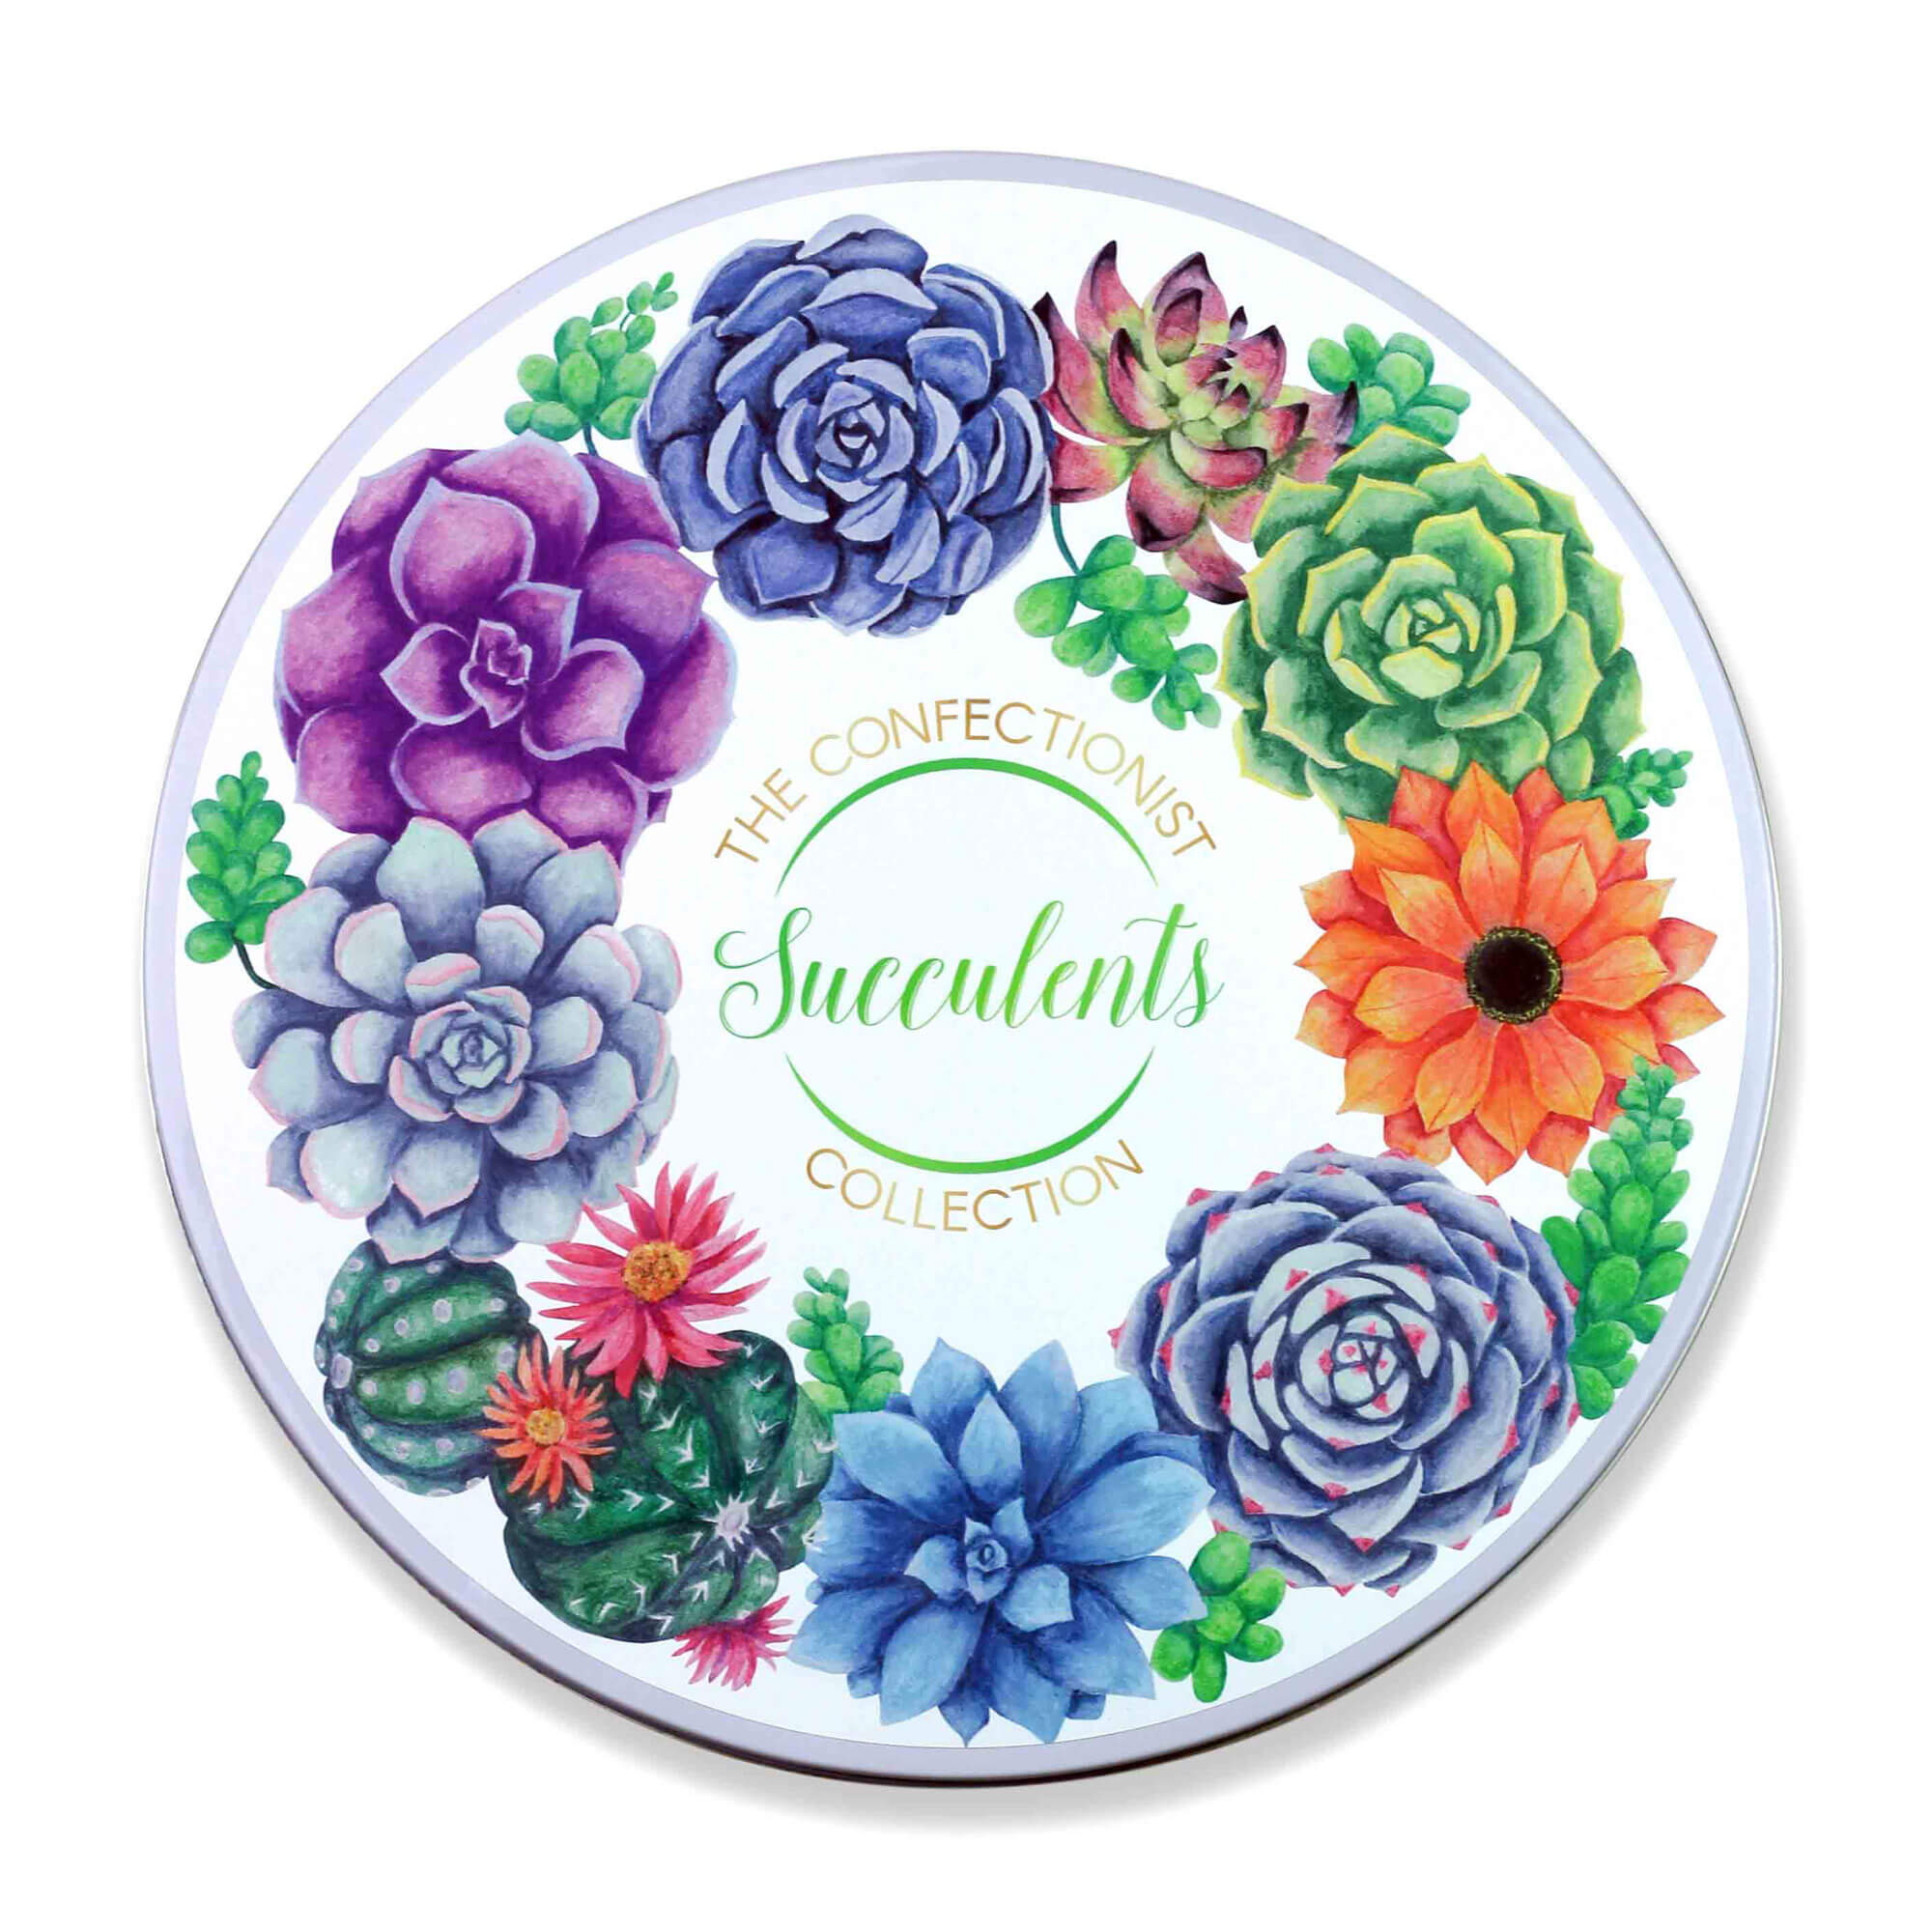 Succulents Biscuit Collection Tin Lid